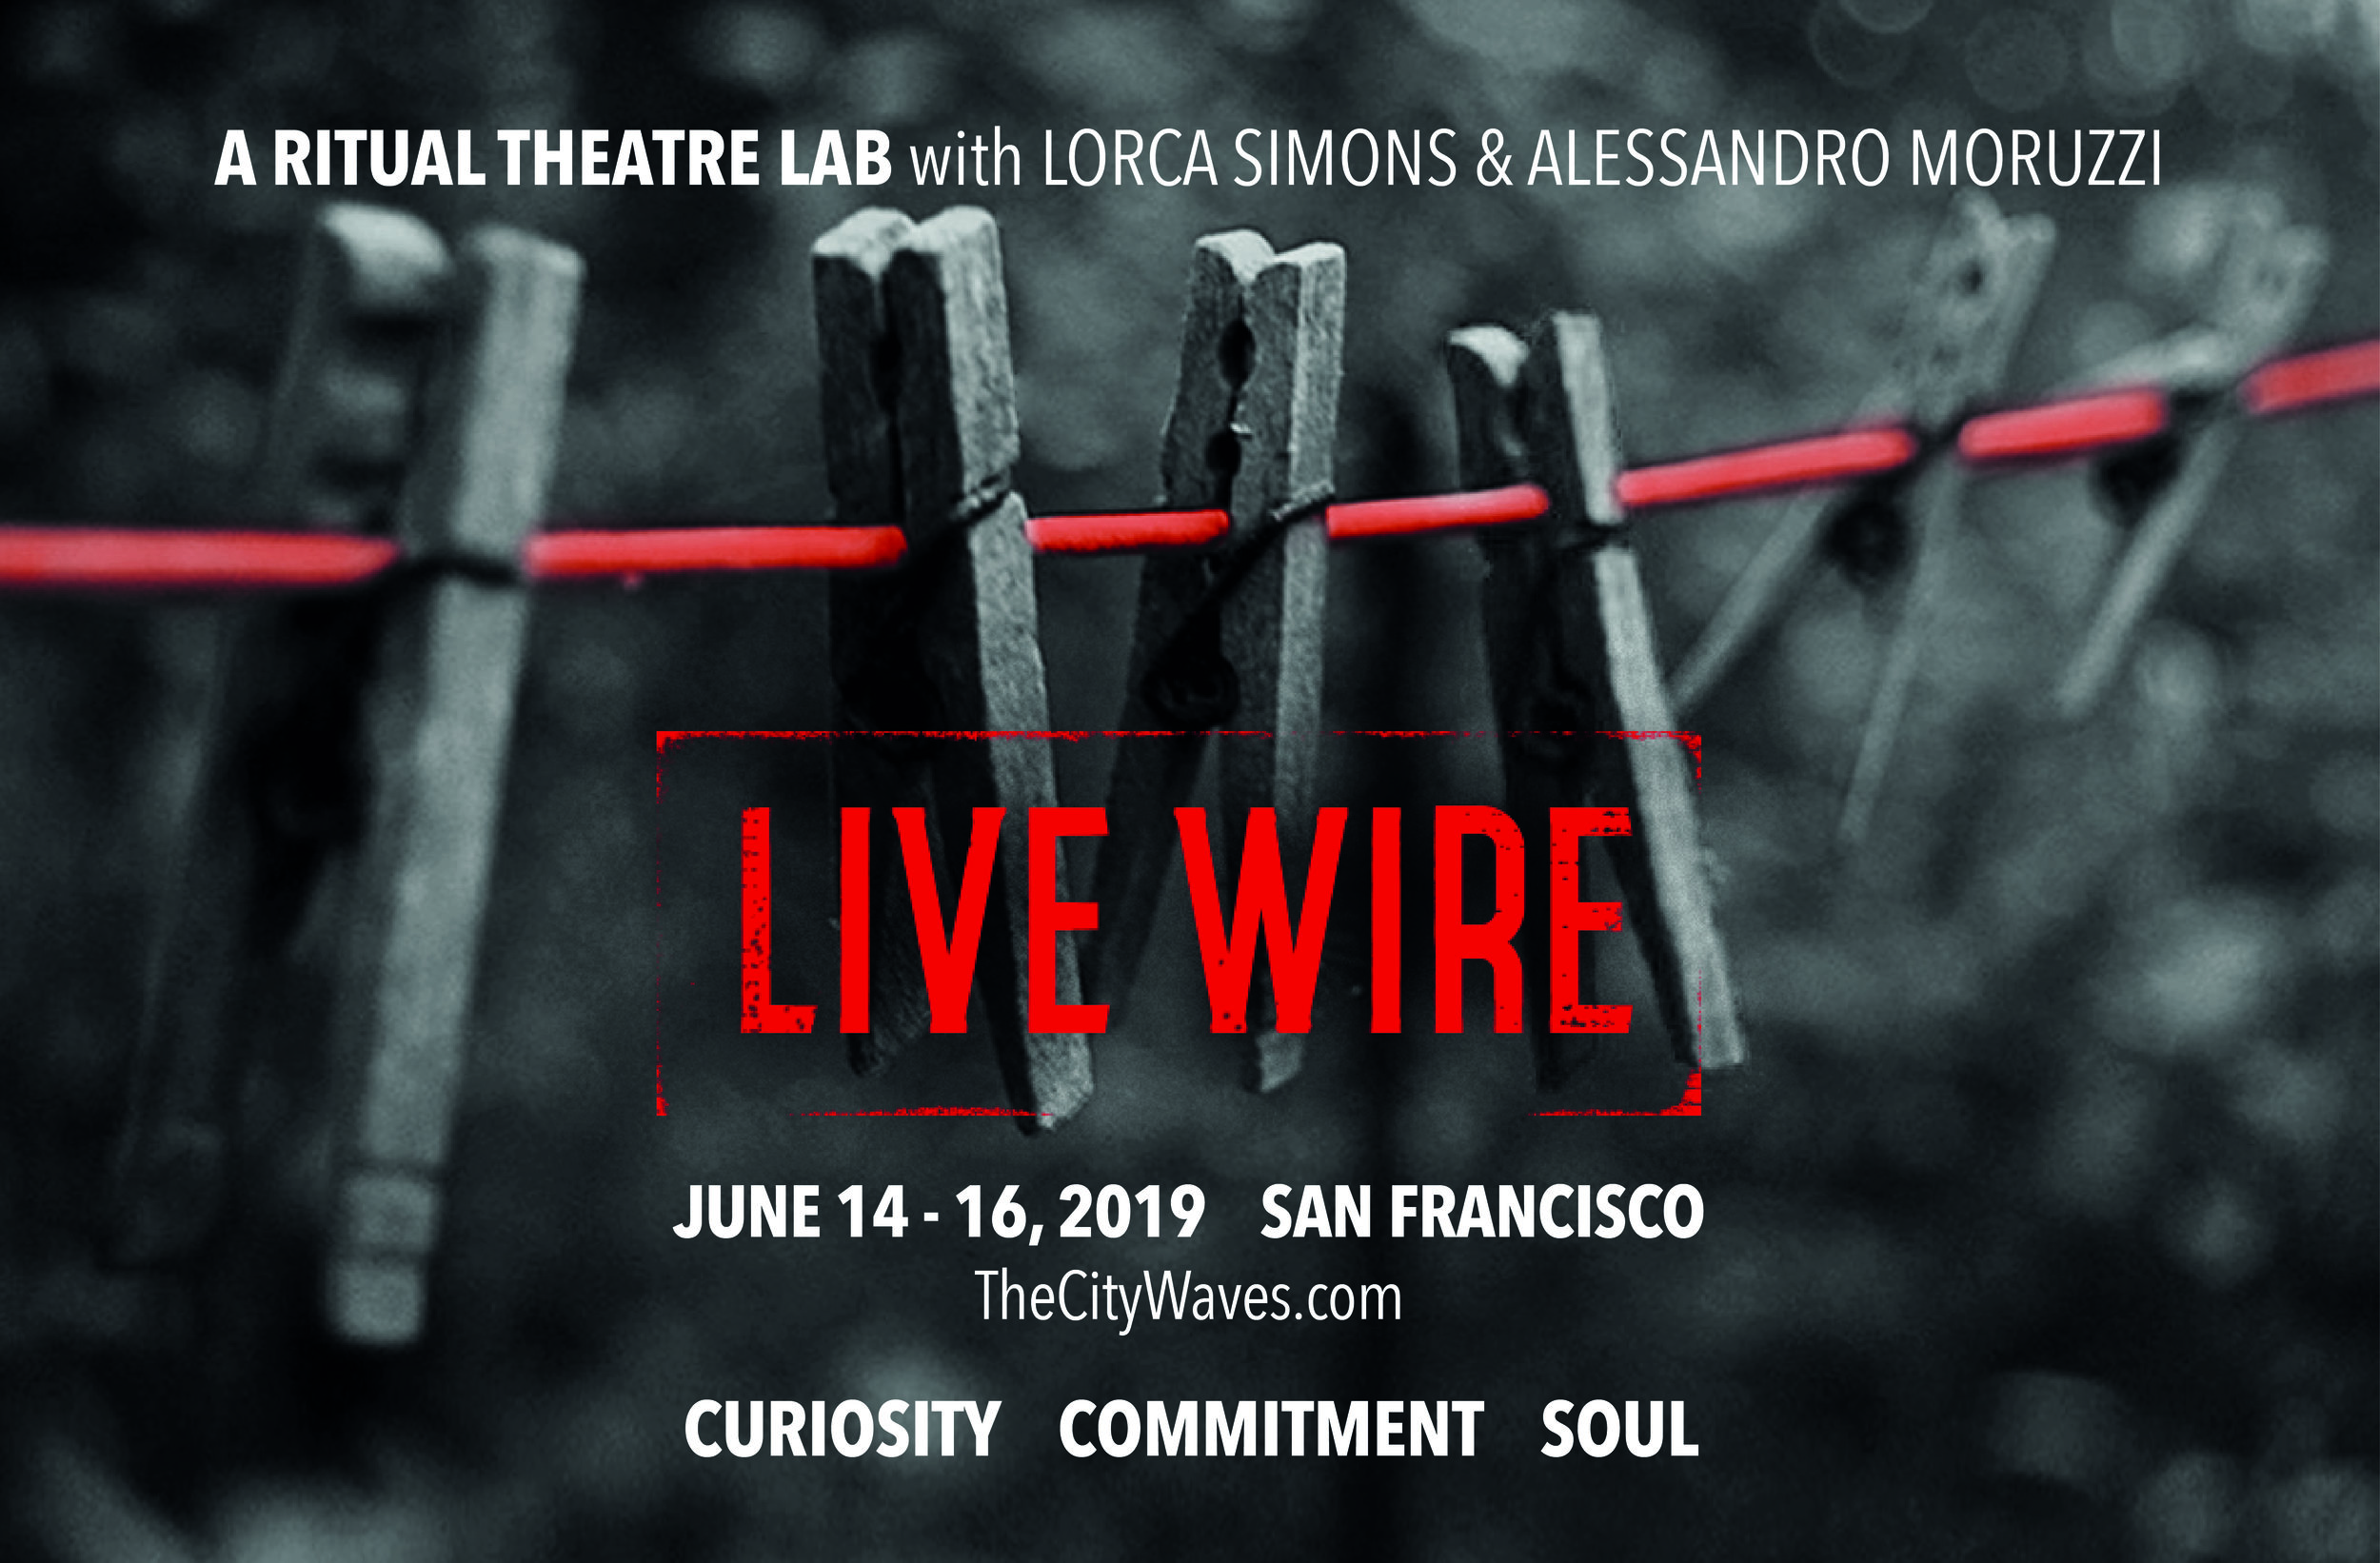 LiveWire_SF_front_highres_version2.jpg